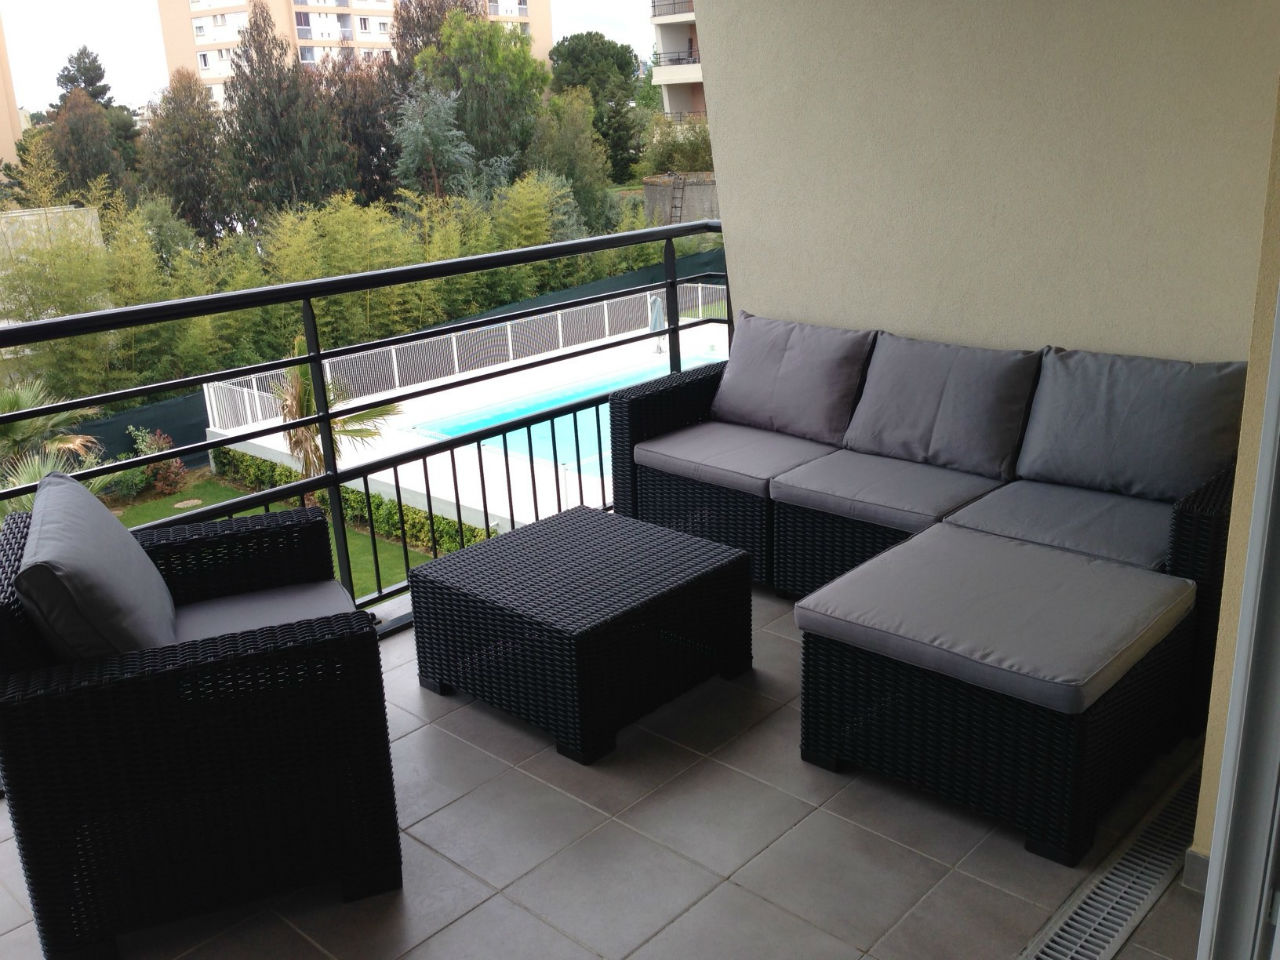 Comment am nager sa terrasse for Amenagement de salon de jardin